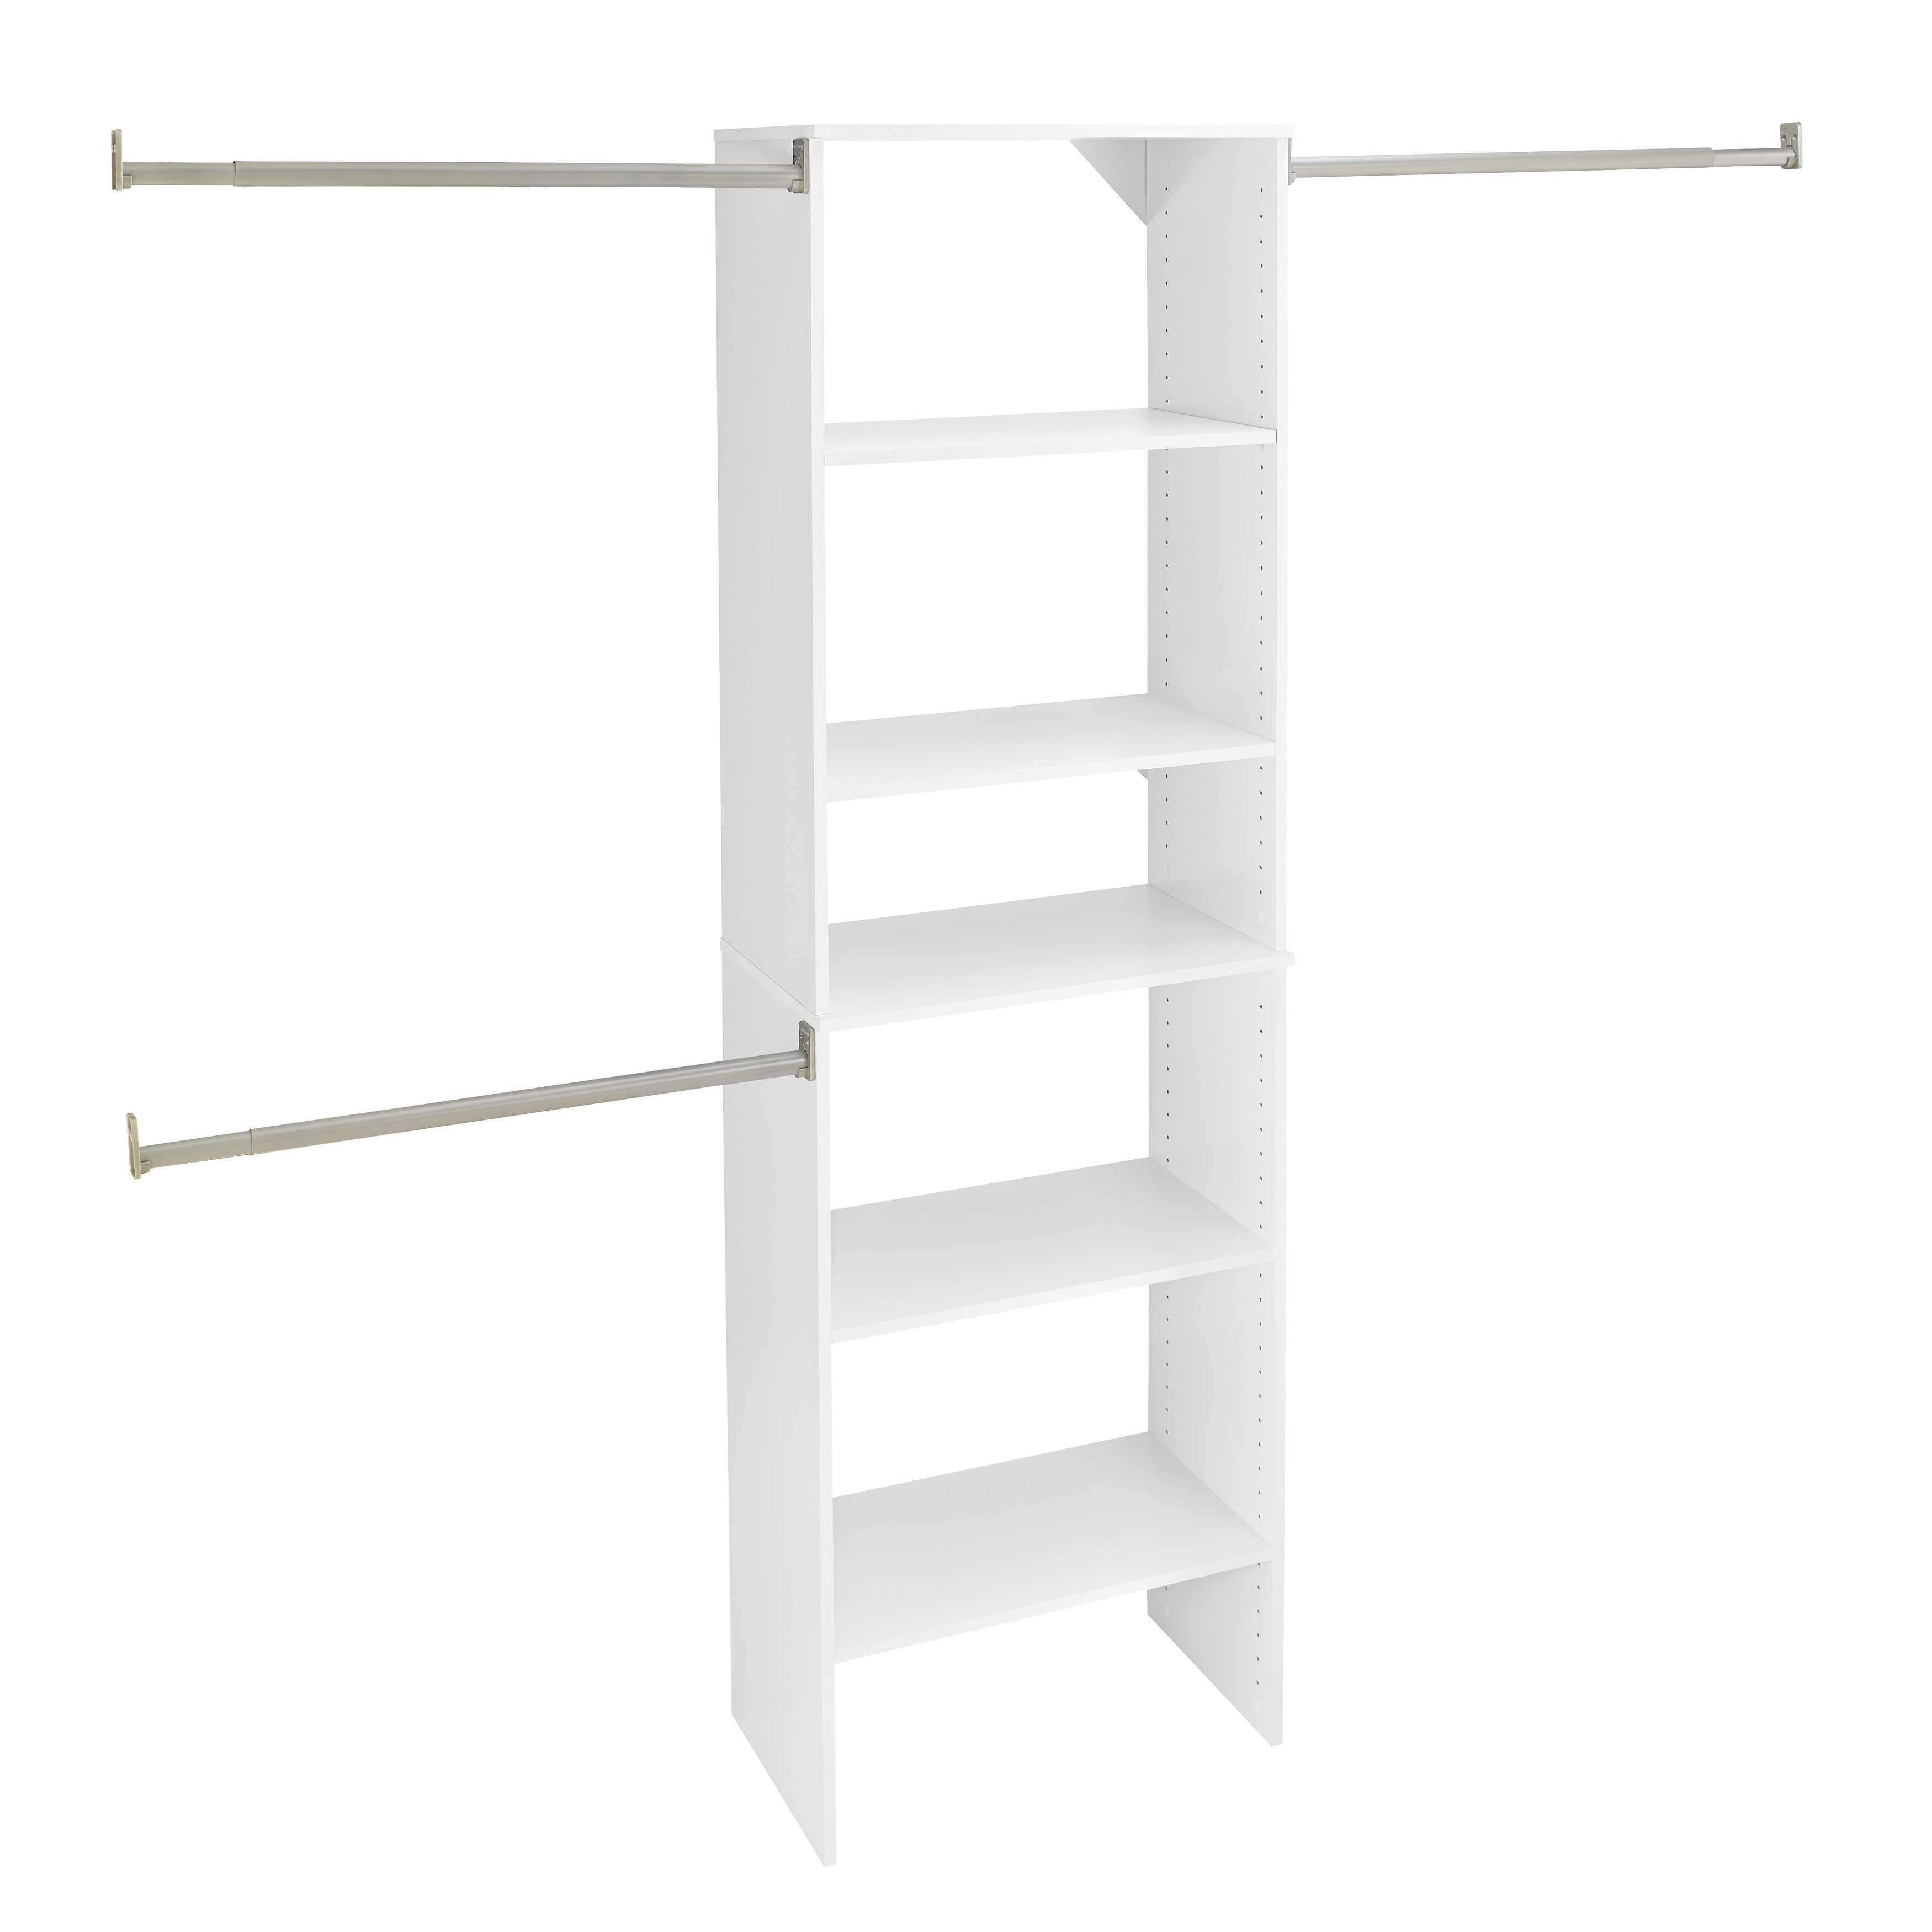 Closetmaid Accessories White Wire Shoe Shelf Kit - Best Closet 2018